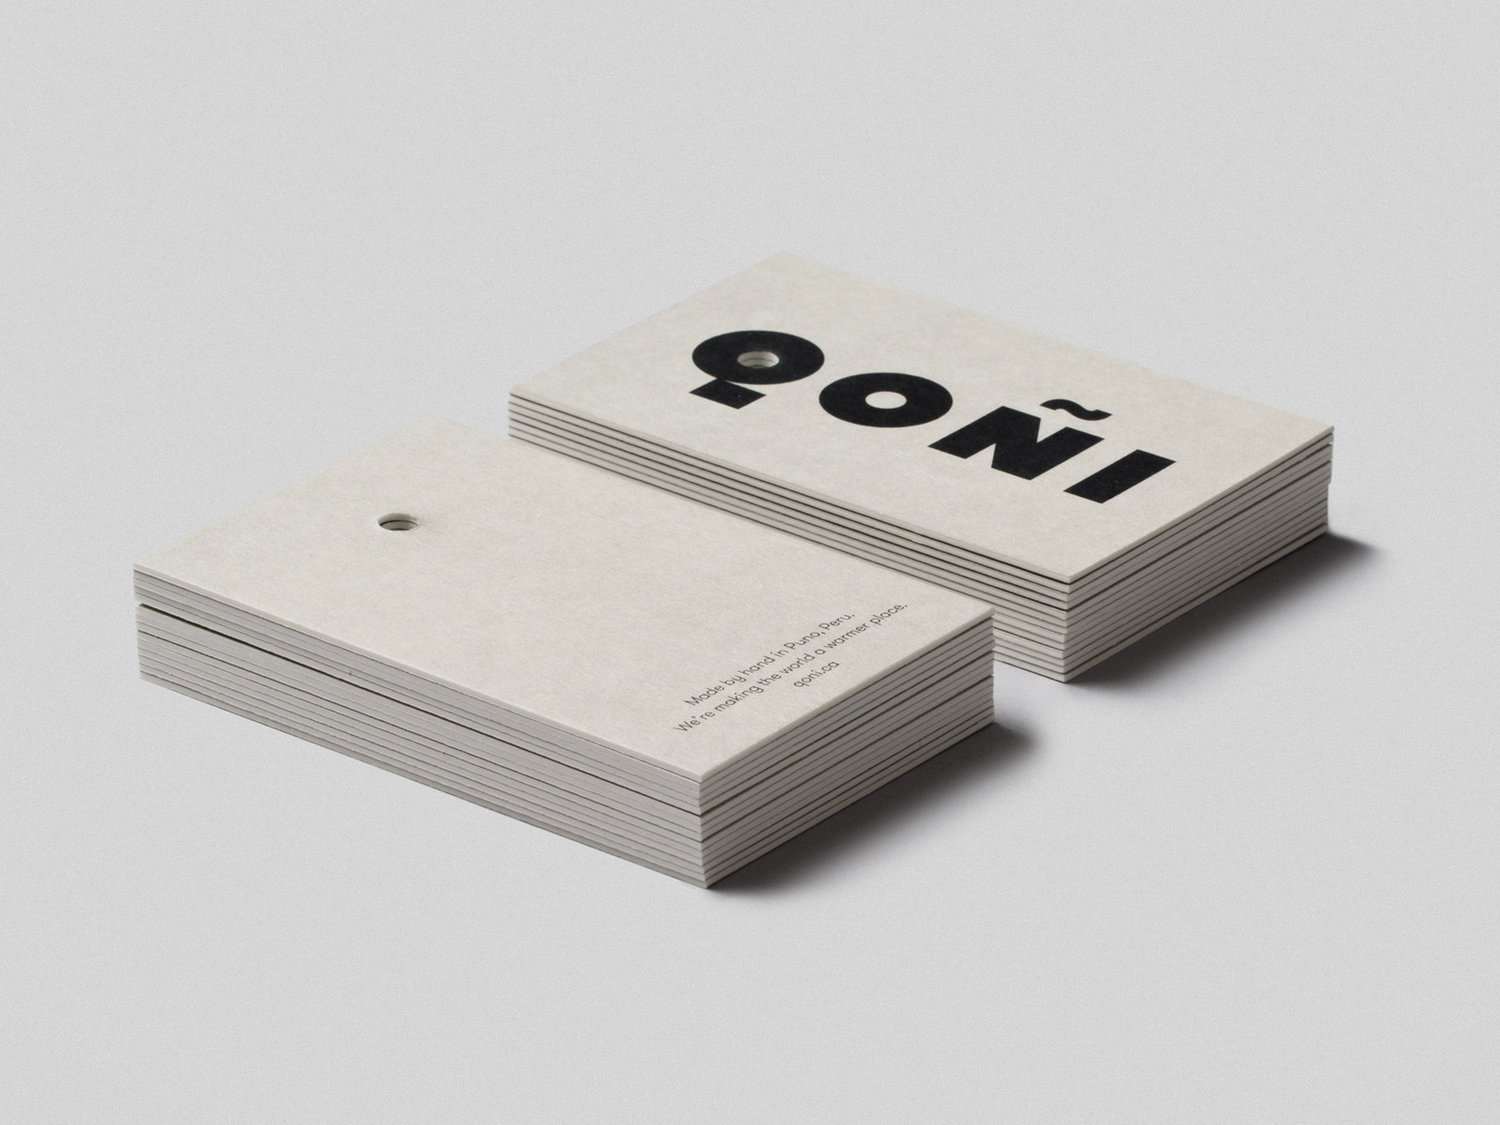 Logotype and uncoated and unbleached products tags by Toronto-based Leo Burnett Design for Peruvian handmade knitwear brand Qoñi